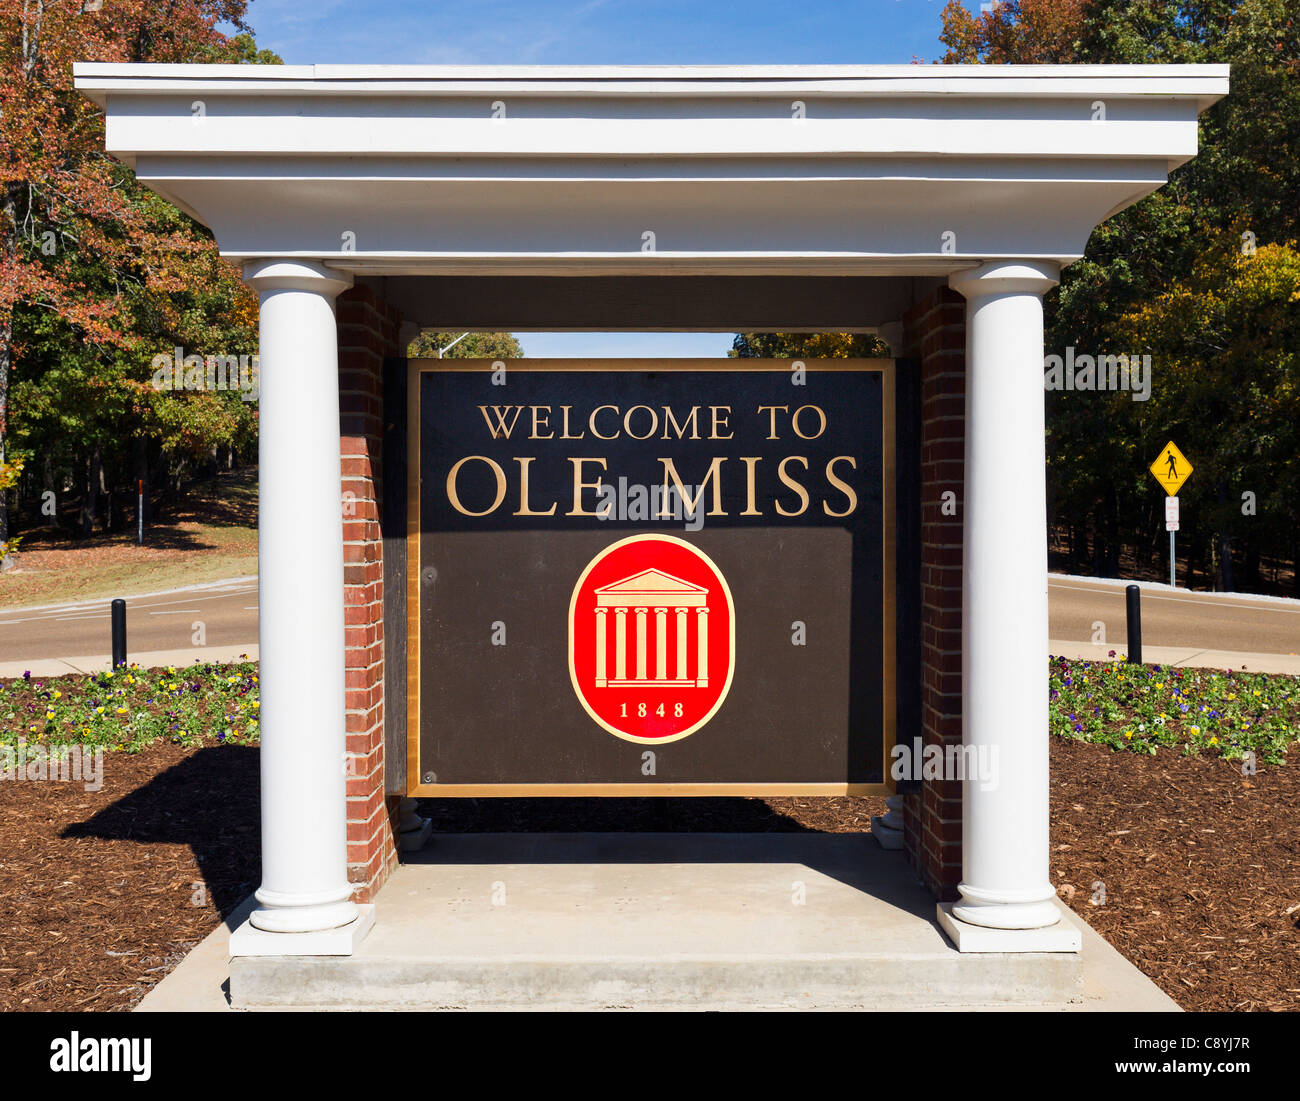 Entrance to the University of Mississippi (Ole Miss), Oxford, Mississippi, USA - Stock Image